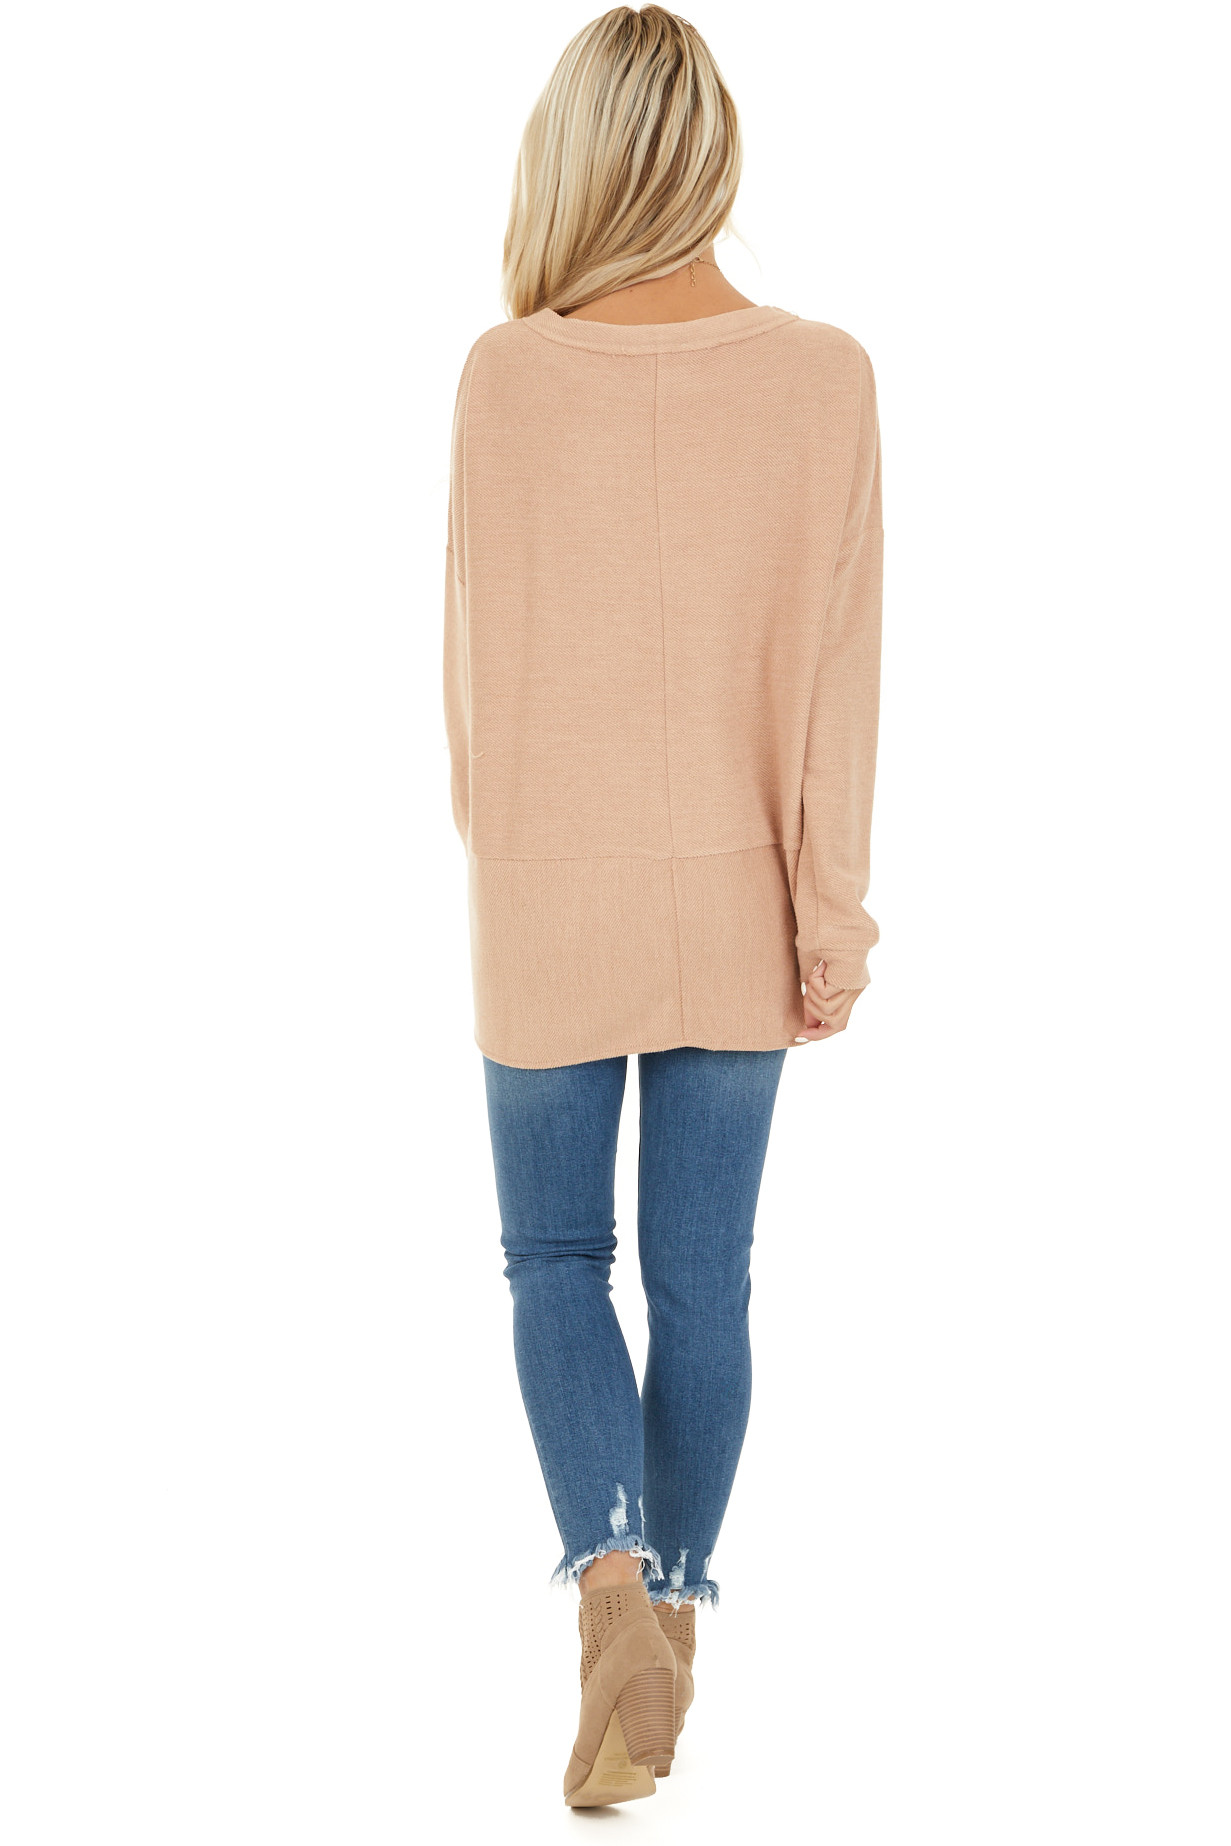 Camel Super Soft Long Sleeve Knit Top with Front Tie back full body